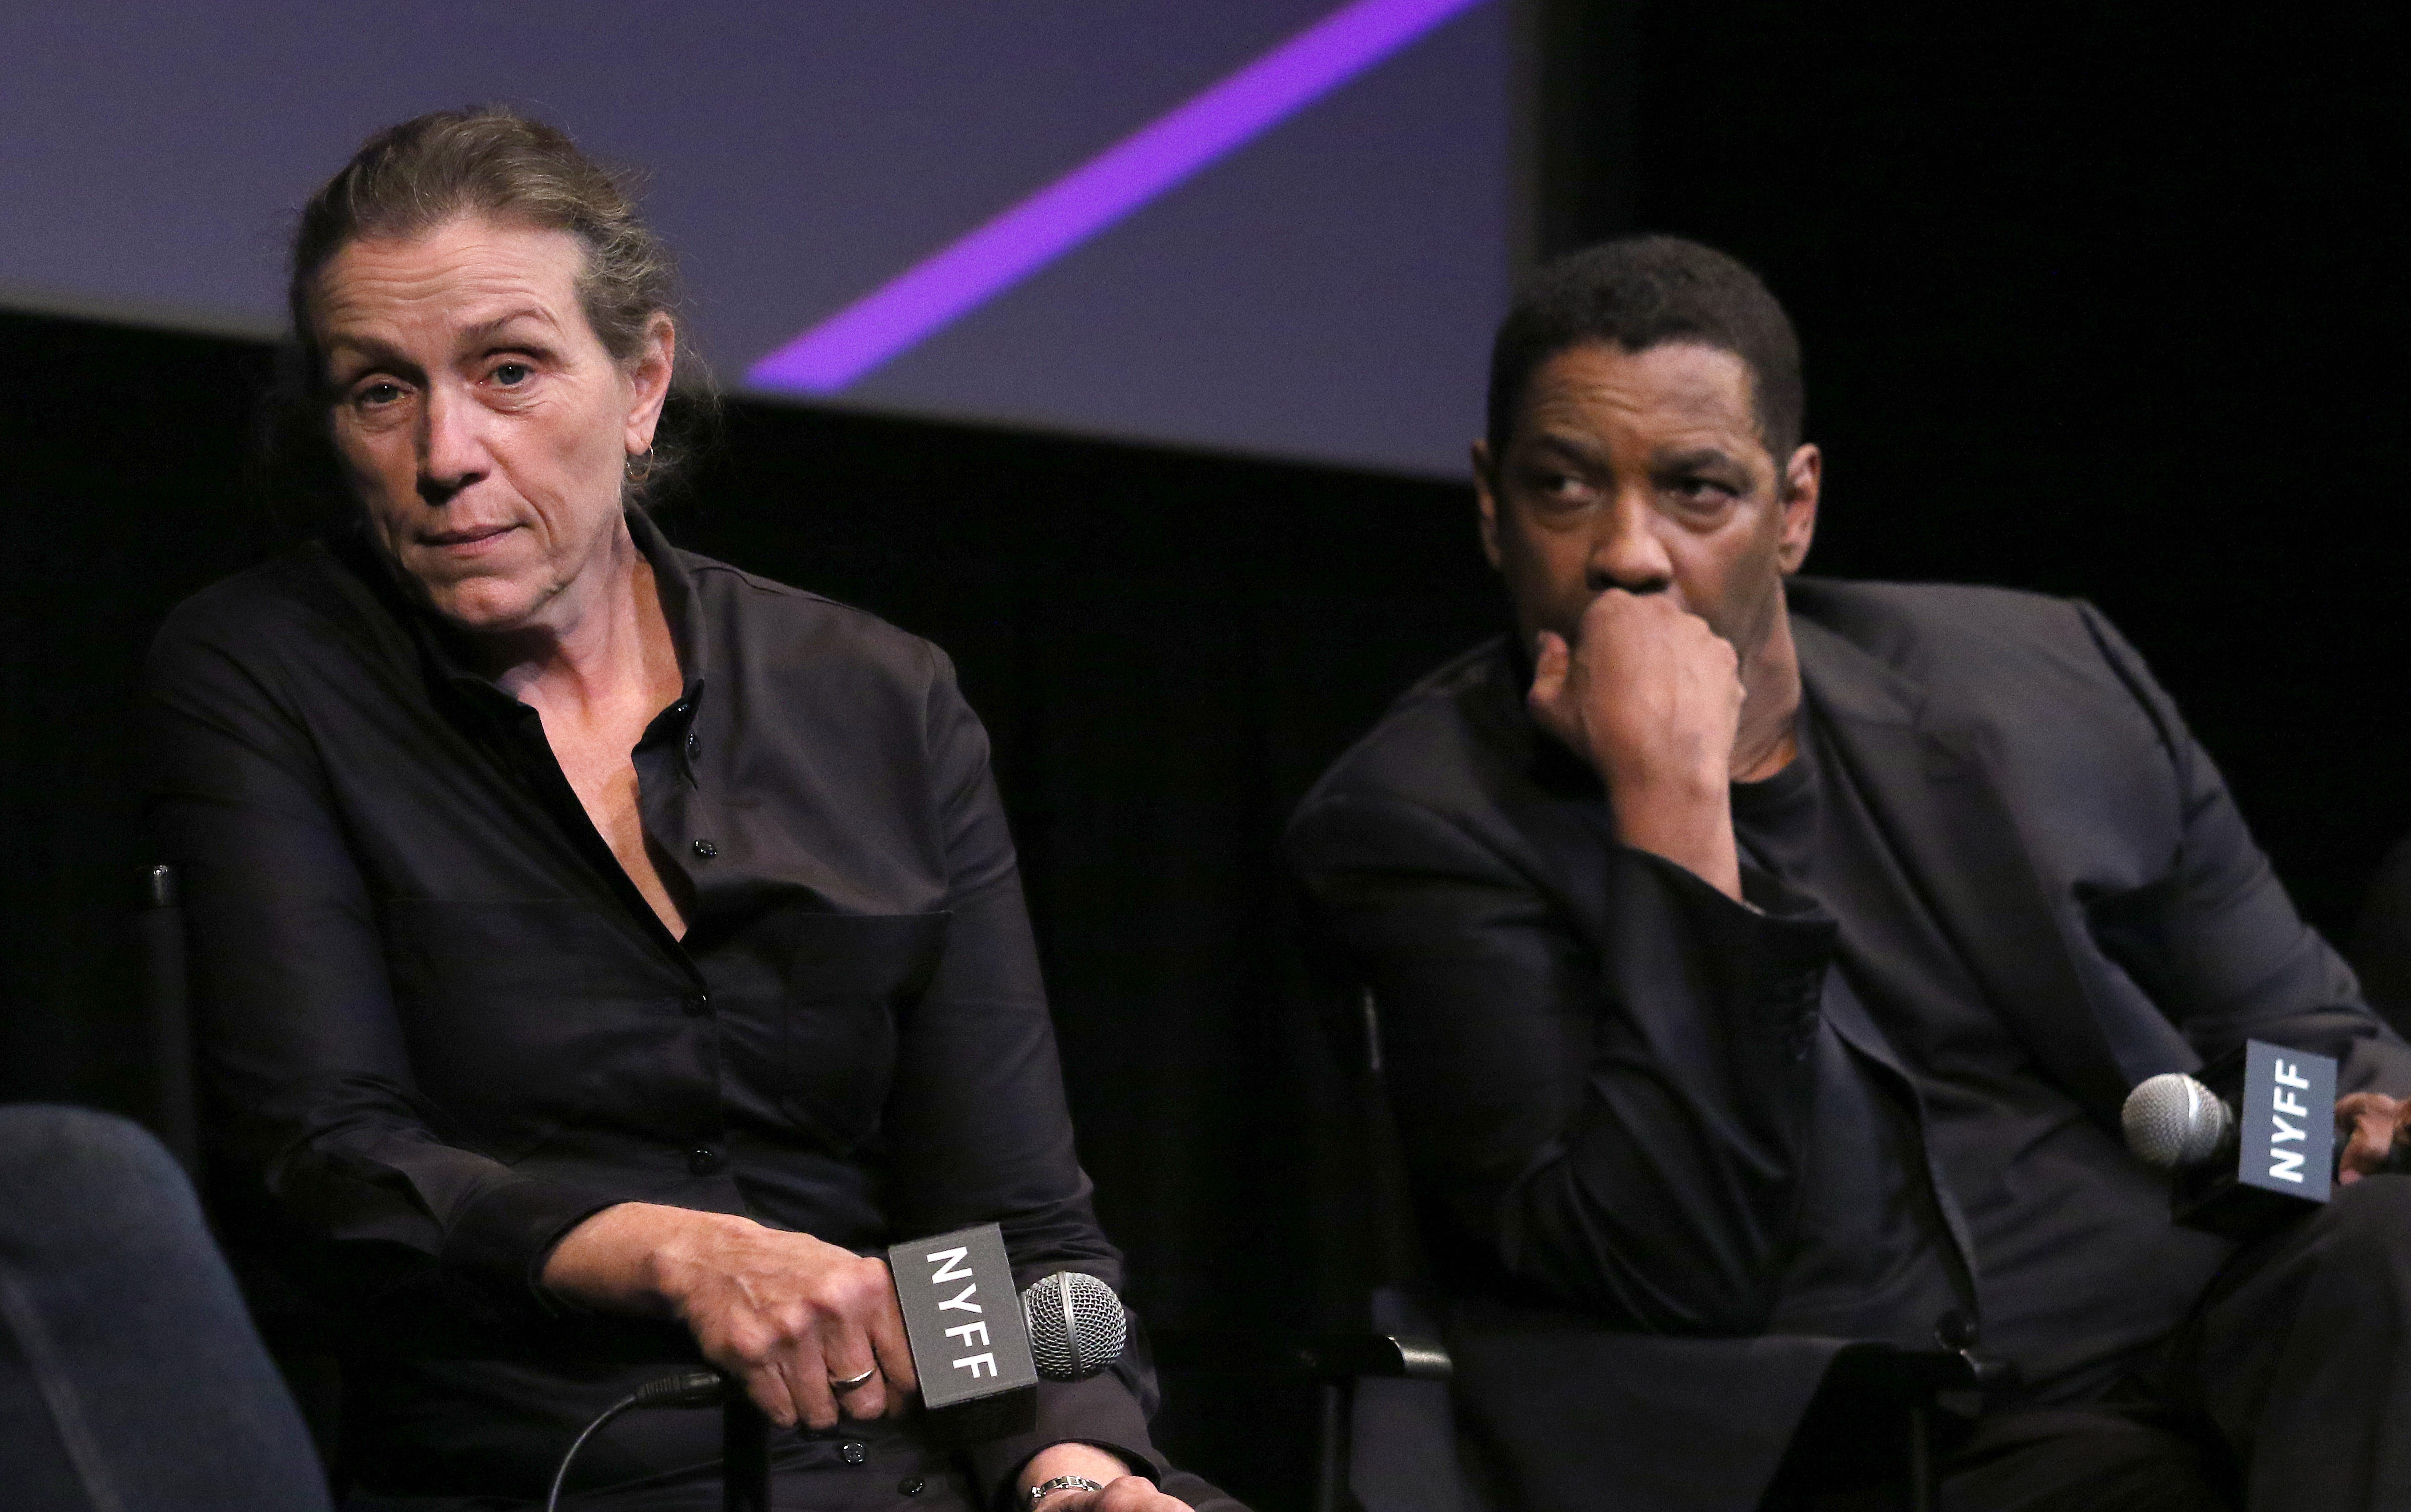 I can t believe we did this : Frances McDormand chokes up with Denzel Washington over  Tragedy of Macbeth